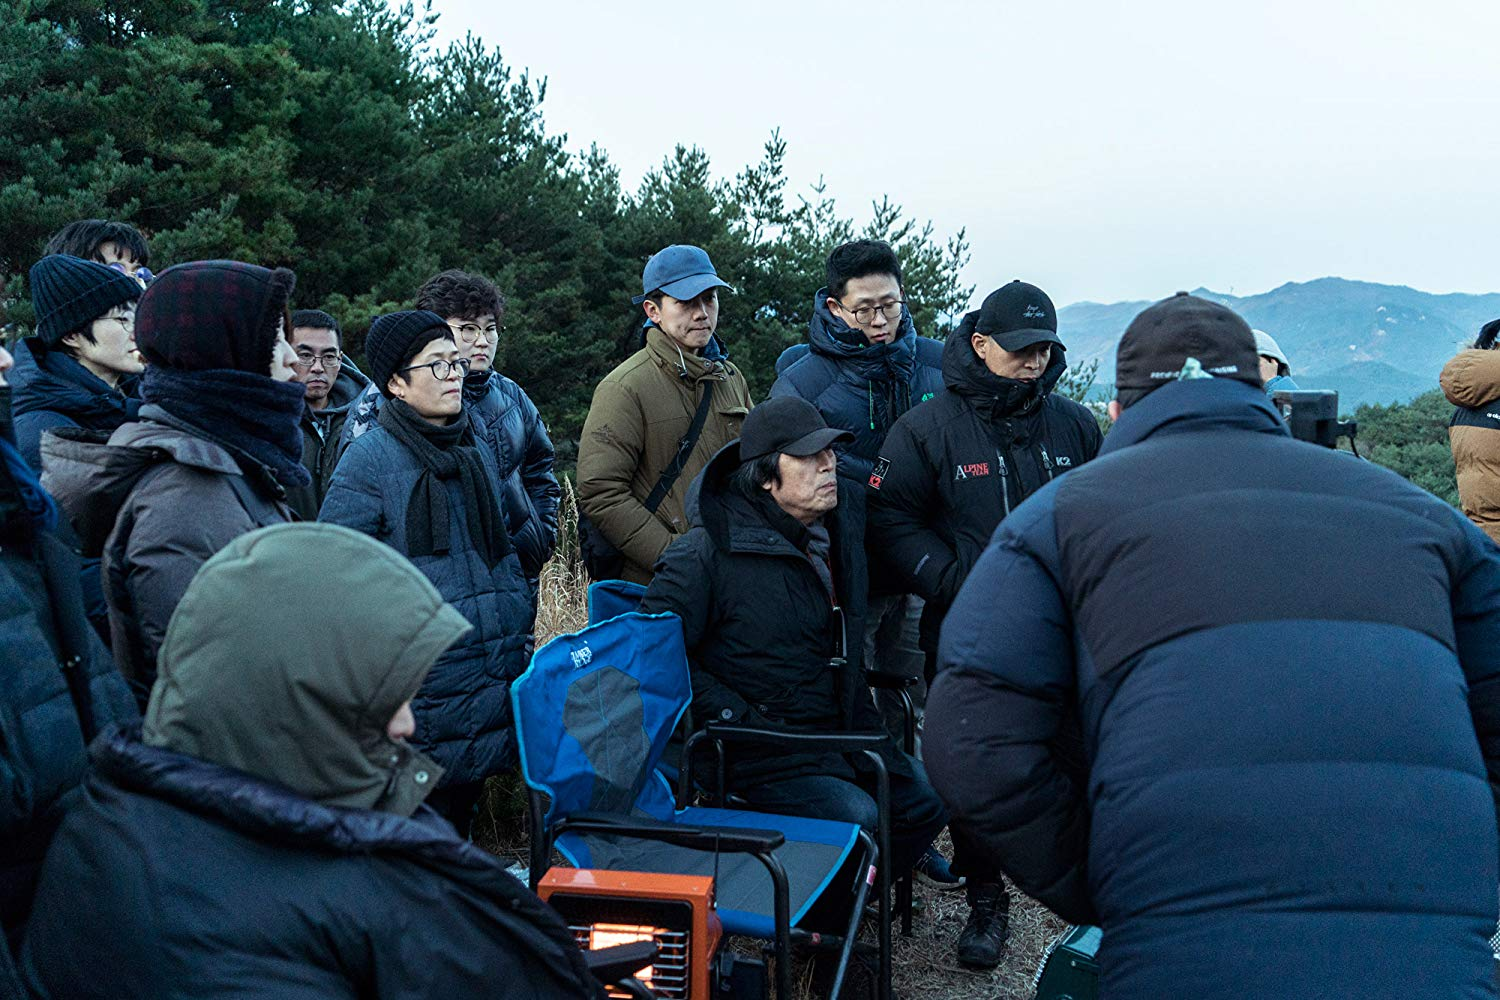 O diretor Chang-dong Lee no set de filmagem. Foto: IMDb.